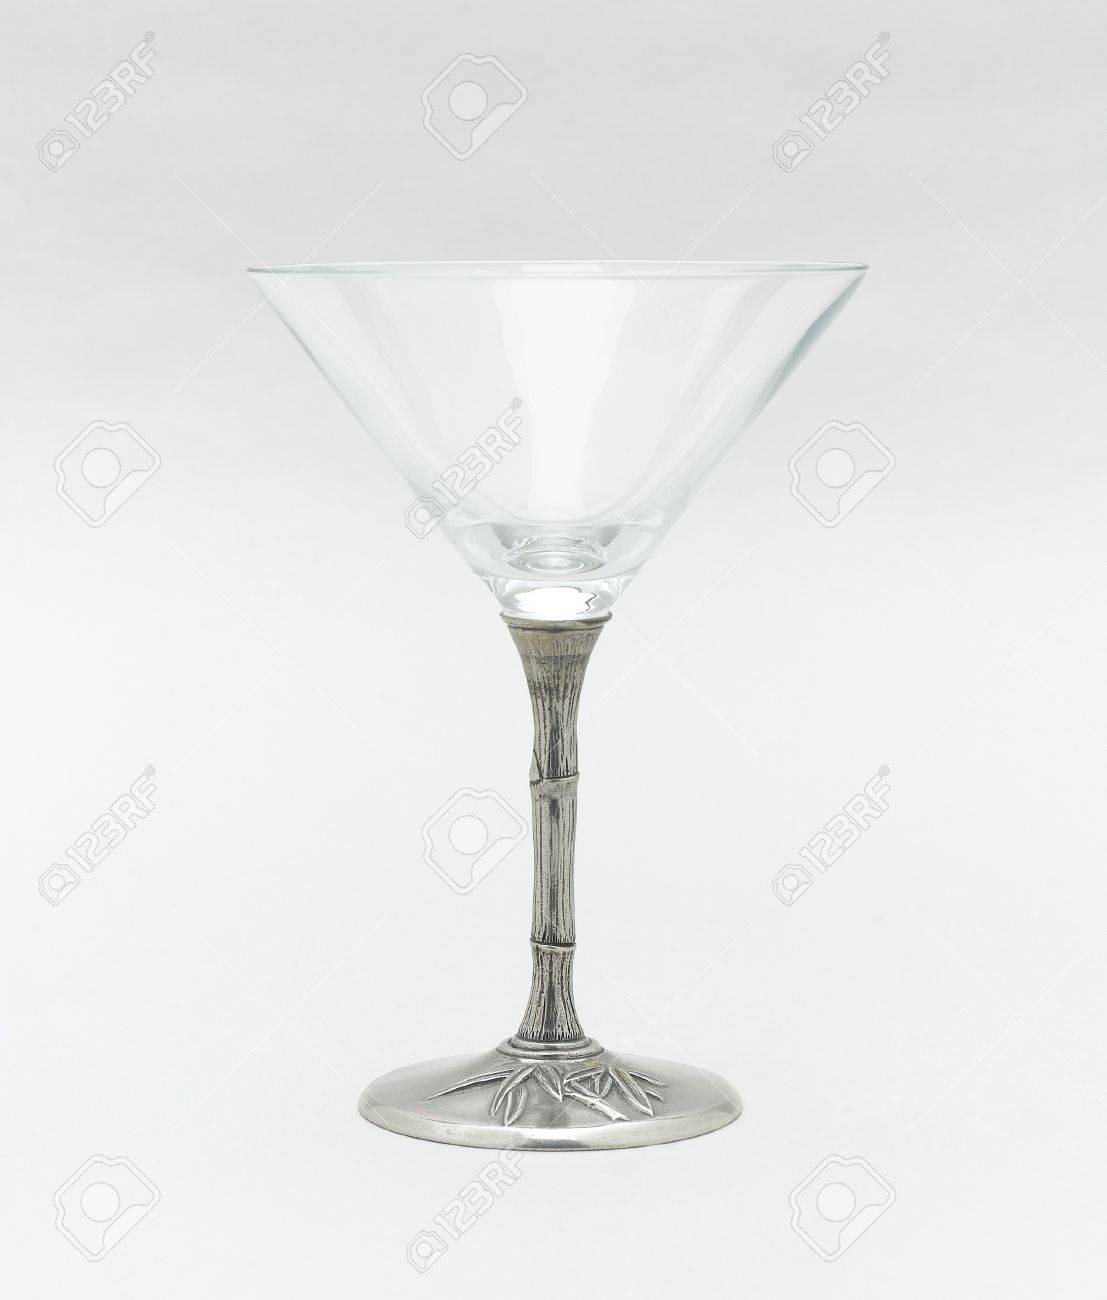 A luxury cocktail glass nice for the party Stock Photo - 16723864